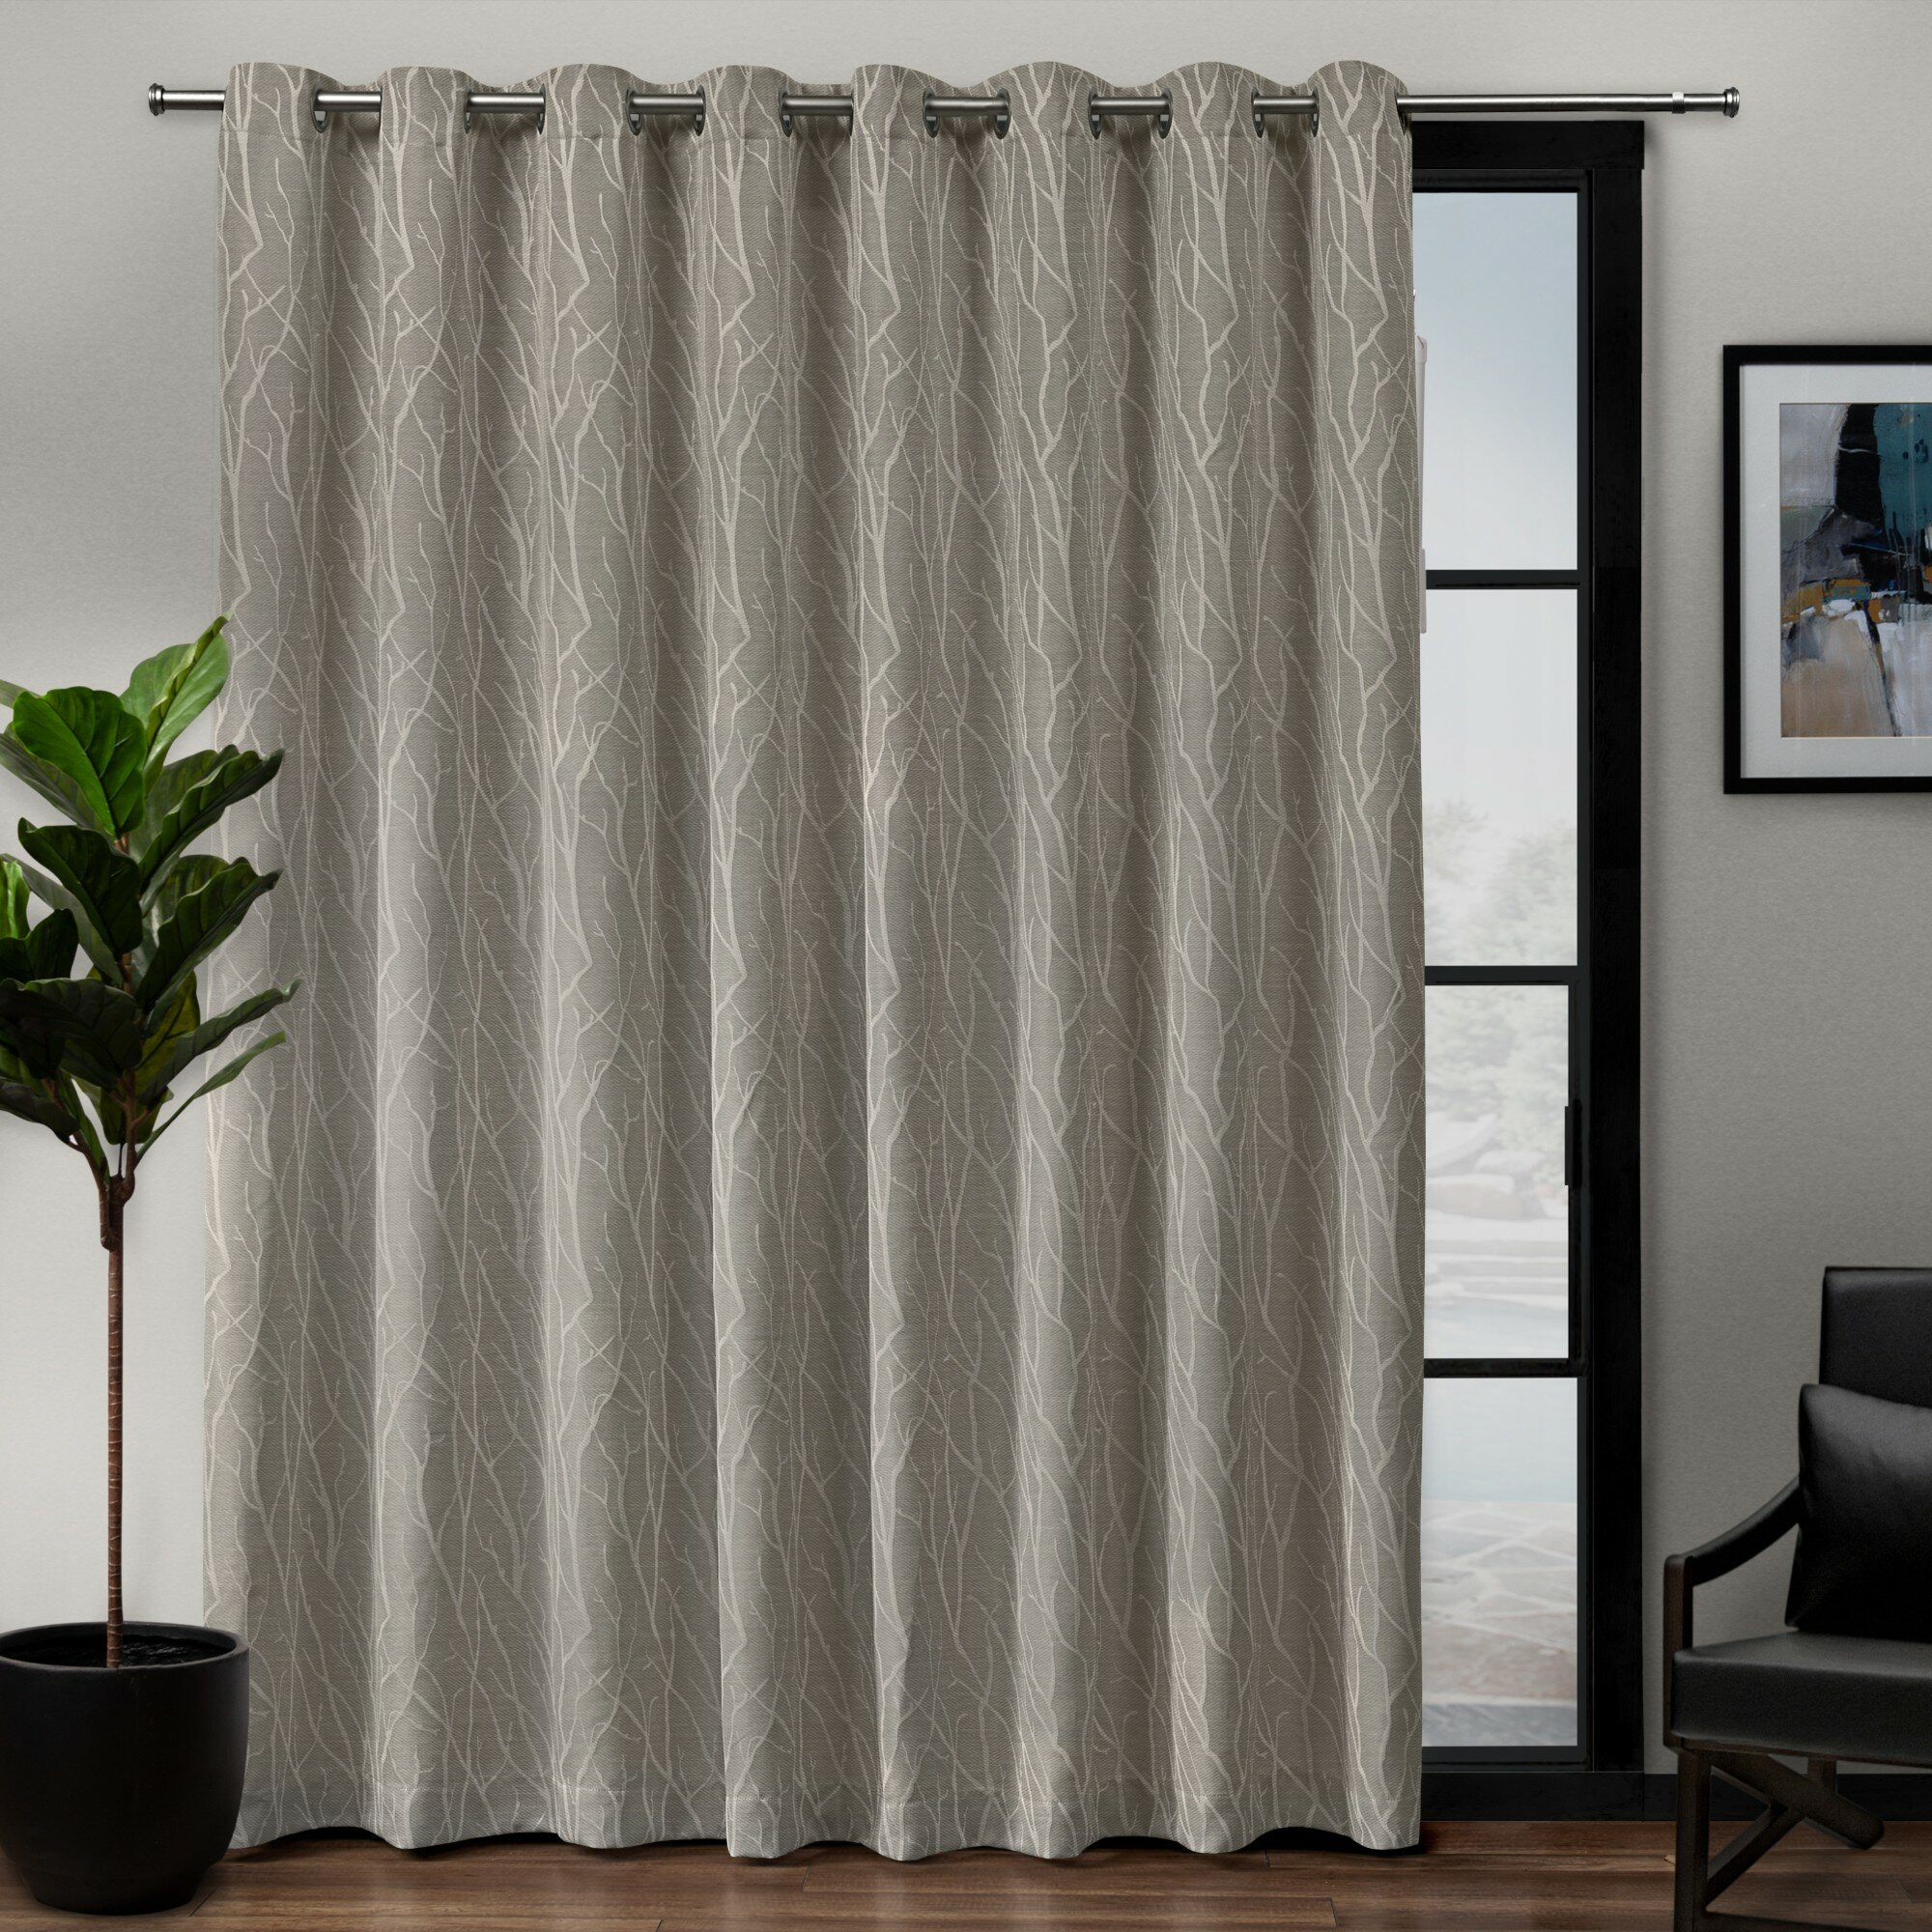 Darby Home Co Prower Patio Woven Blackout Thermal Grommet With Superior Leaves Insulated Thermal Blackout Grommet Curtain Panel Pairs (View 2 of 30)